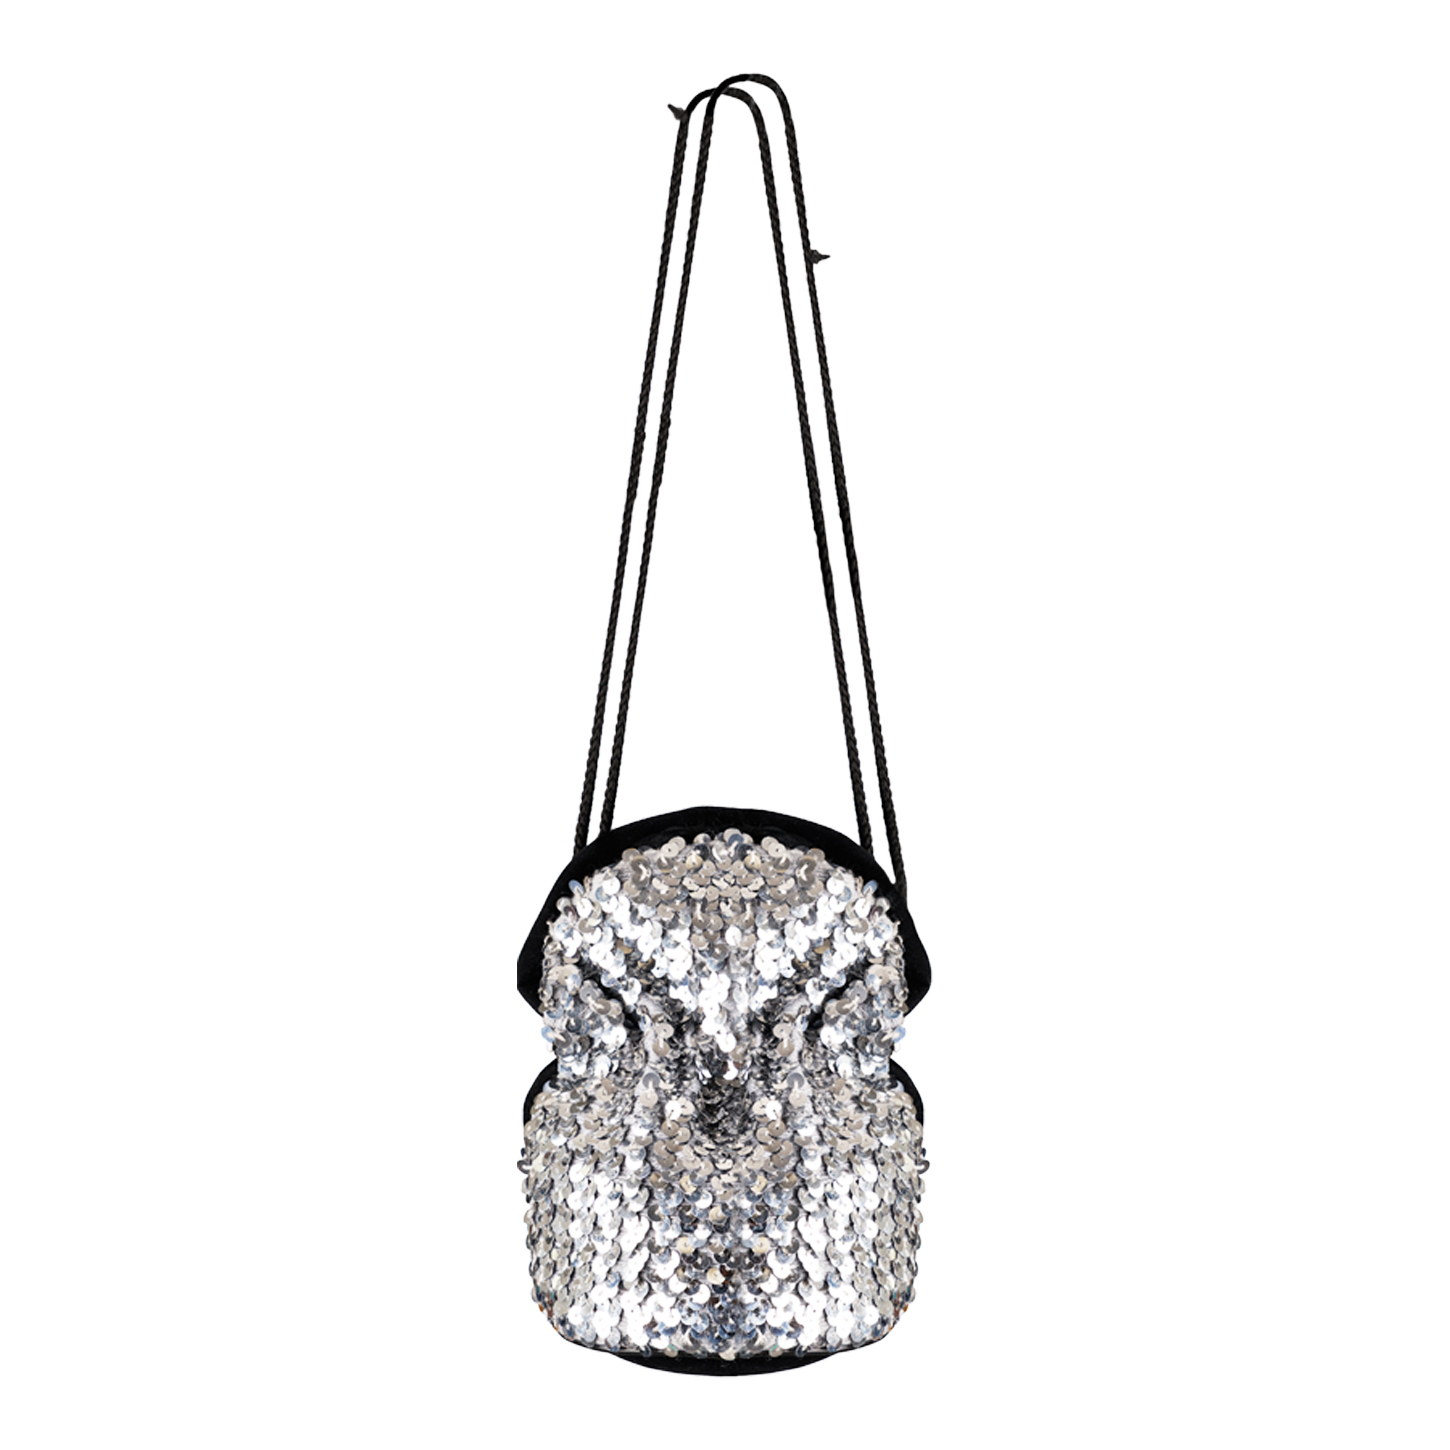 Sac mini à sequins